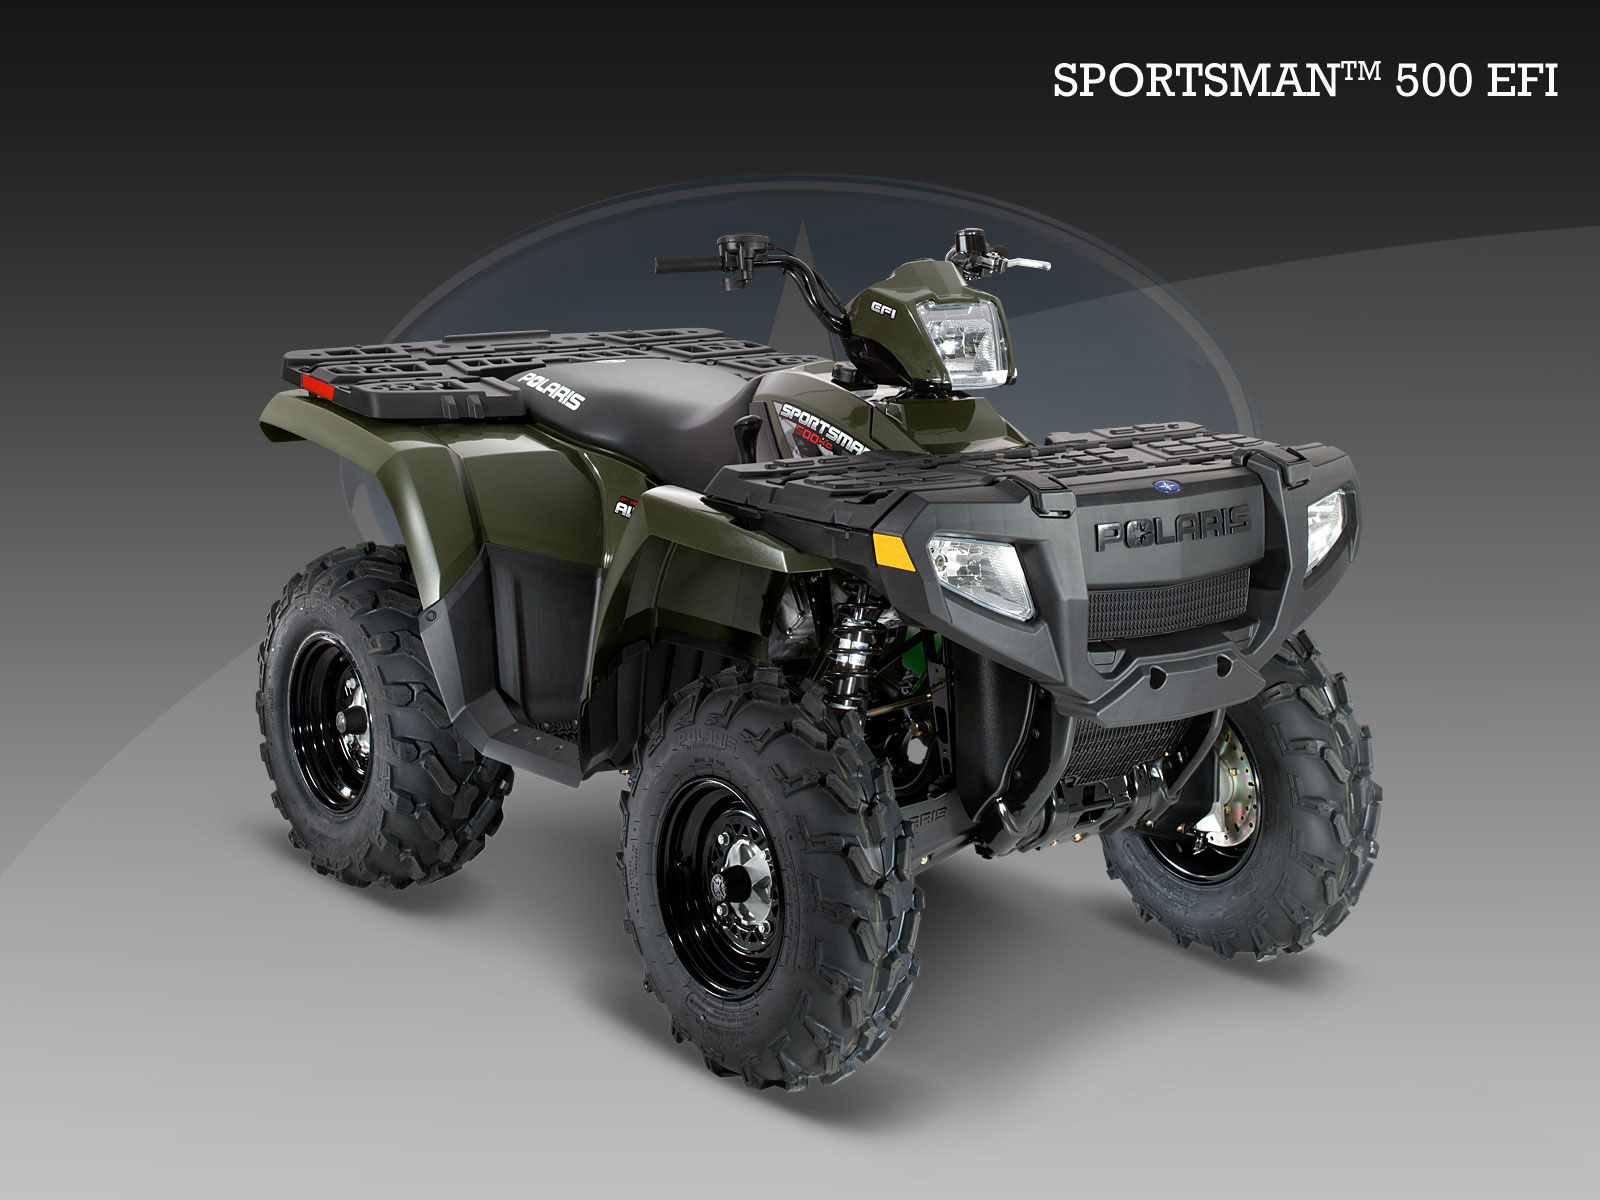 polaris sportsman 500 efi specs 2008 2009 autoevolution. Black Bedroom Furniture Sets. Home Design Ideas